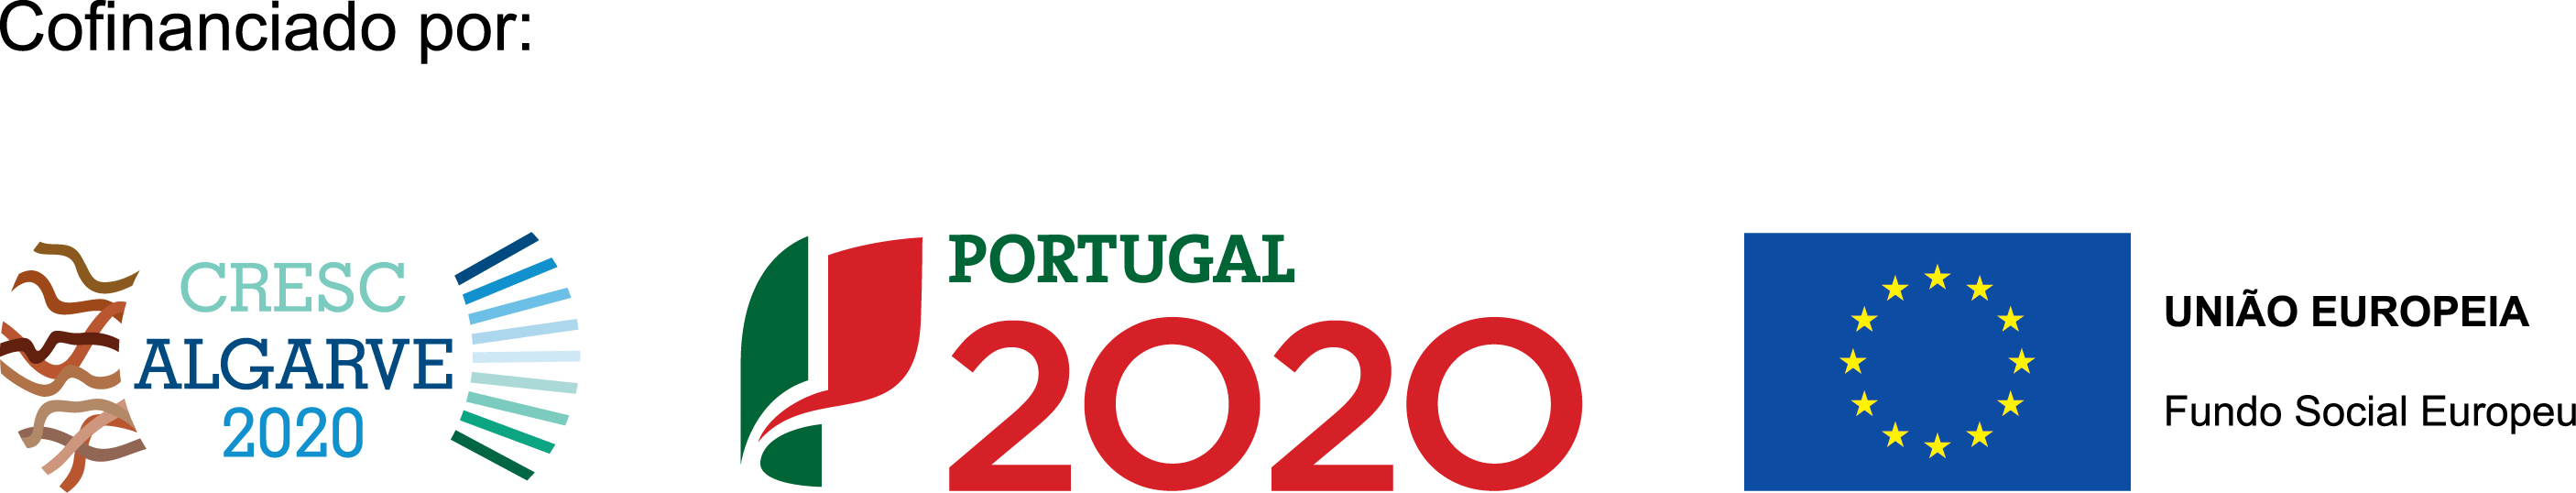 https://activbookings.com/portugal2020/